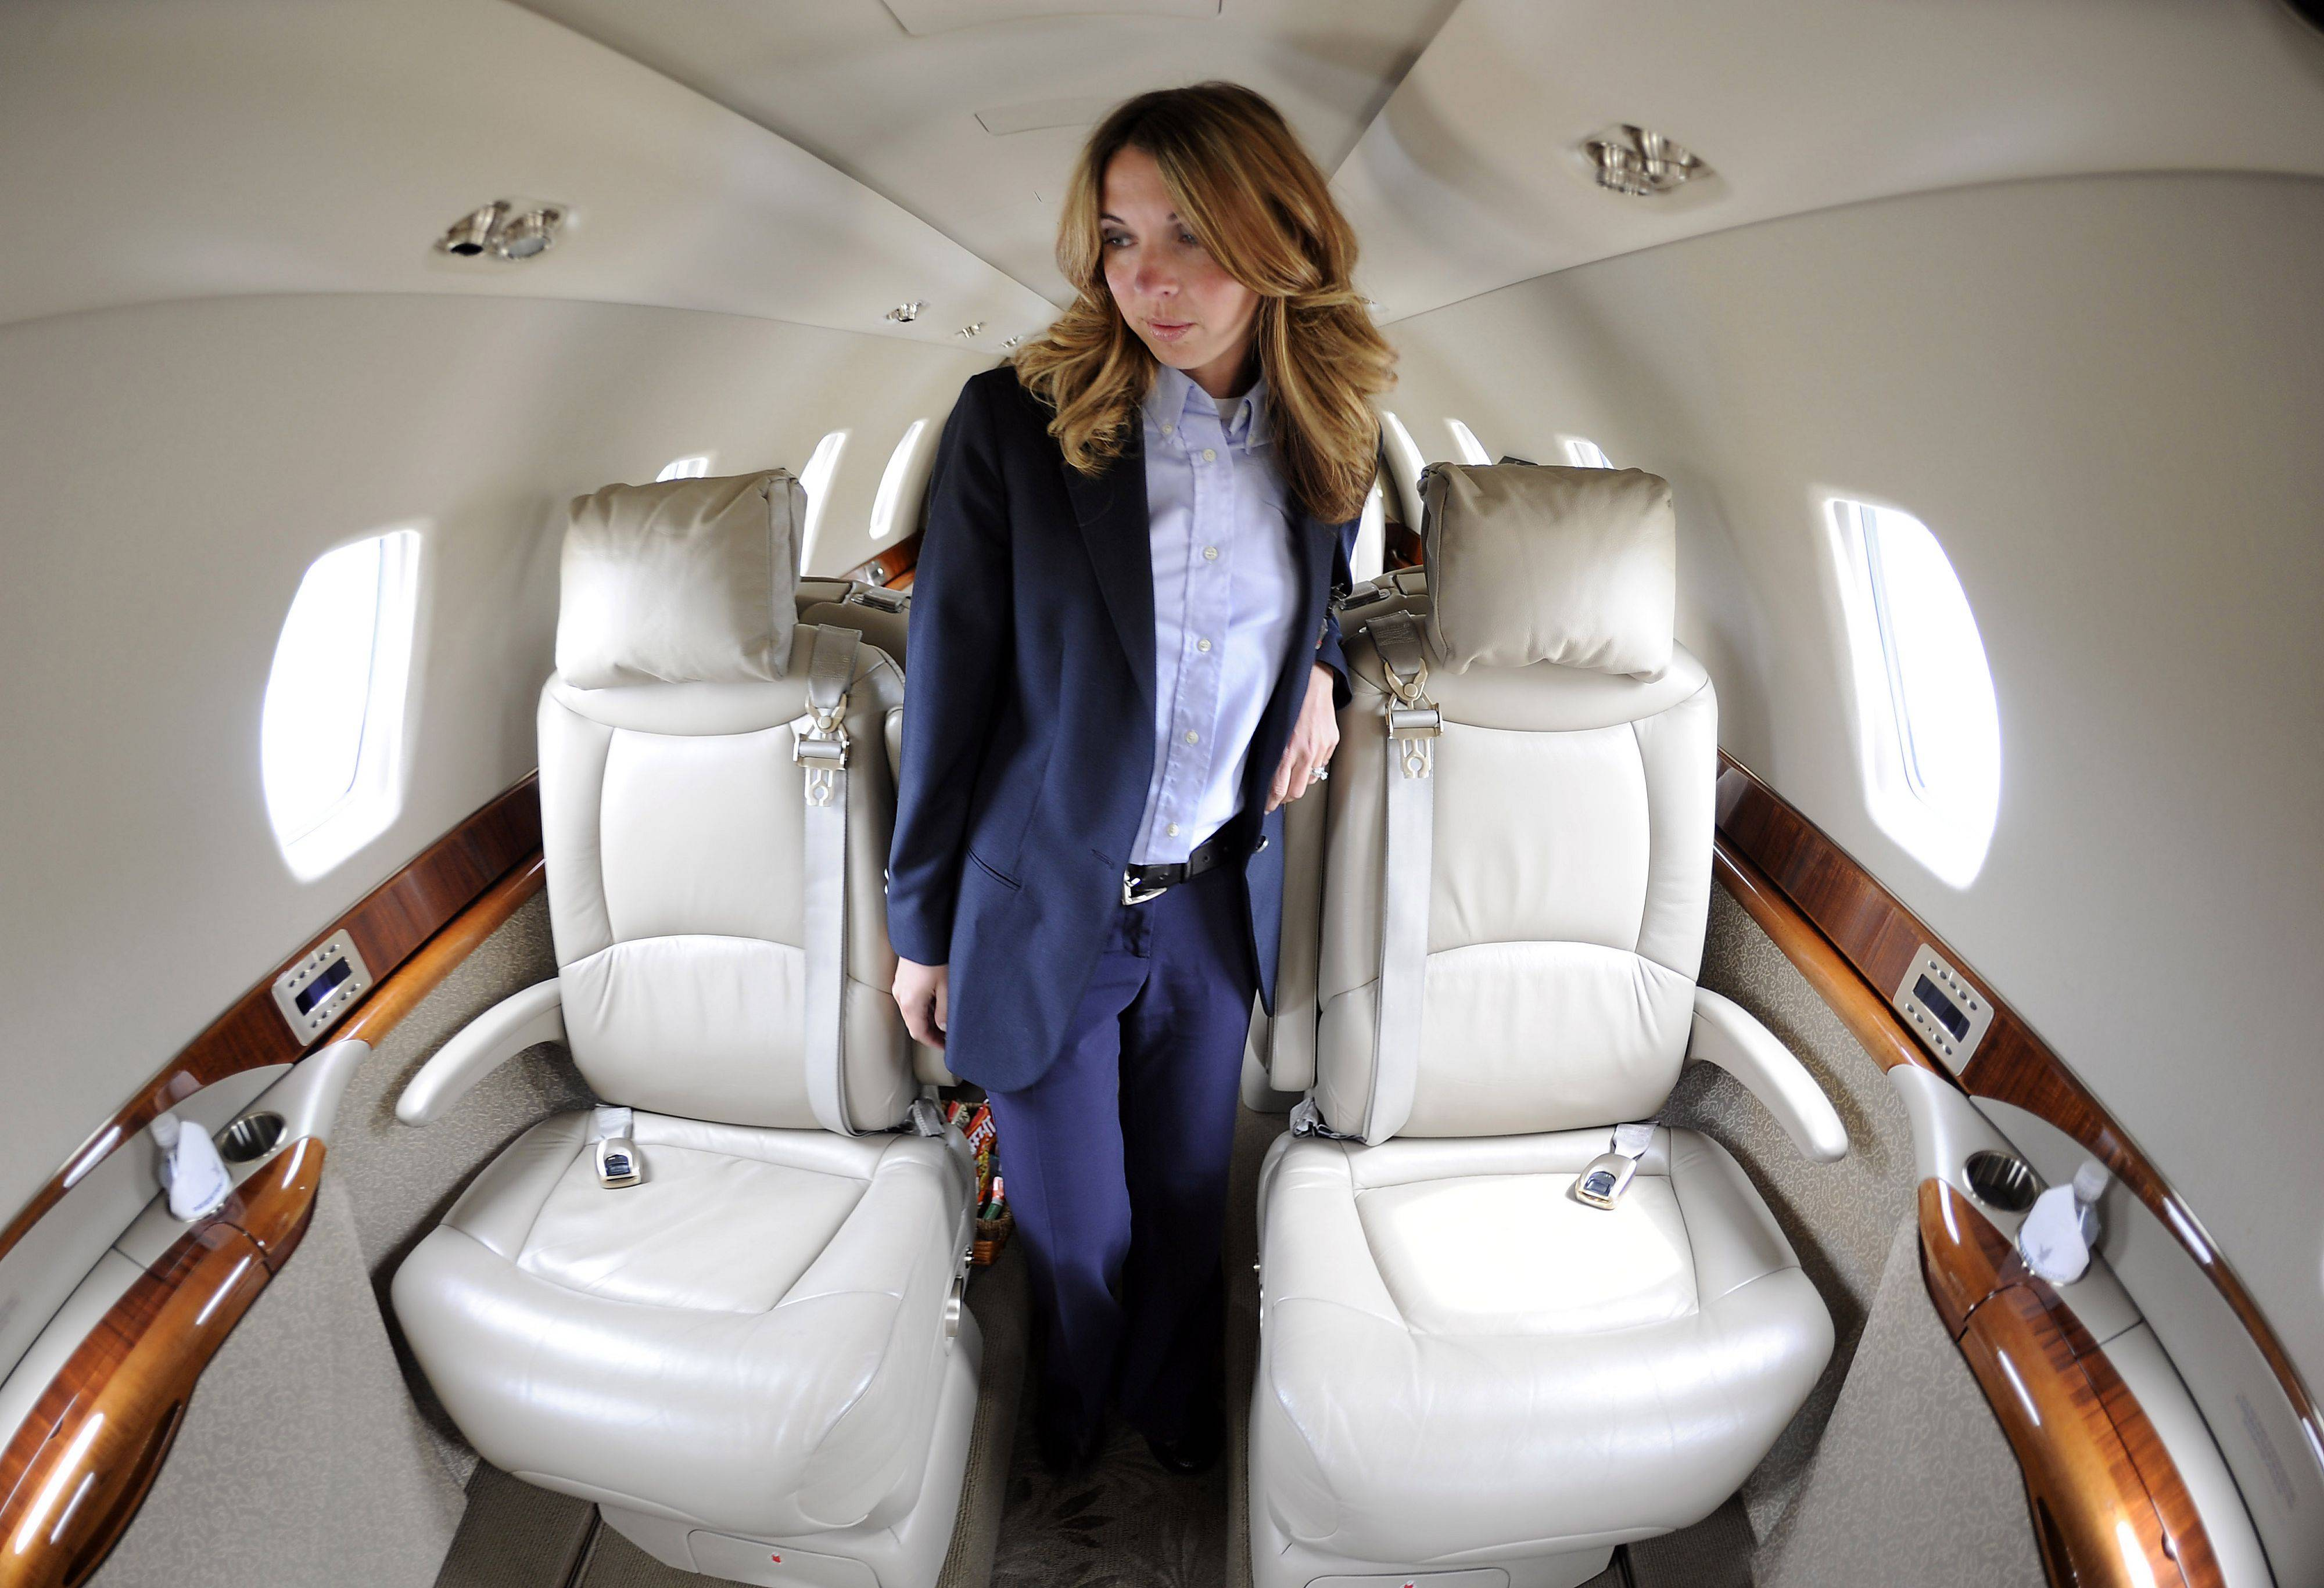 Amanda Sorenson of Priester Aviation walks through her Citation Sovereign aircraft making sure all is prim and proper before she flies off from Chicago Executive Airport to pick up her clients.